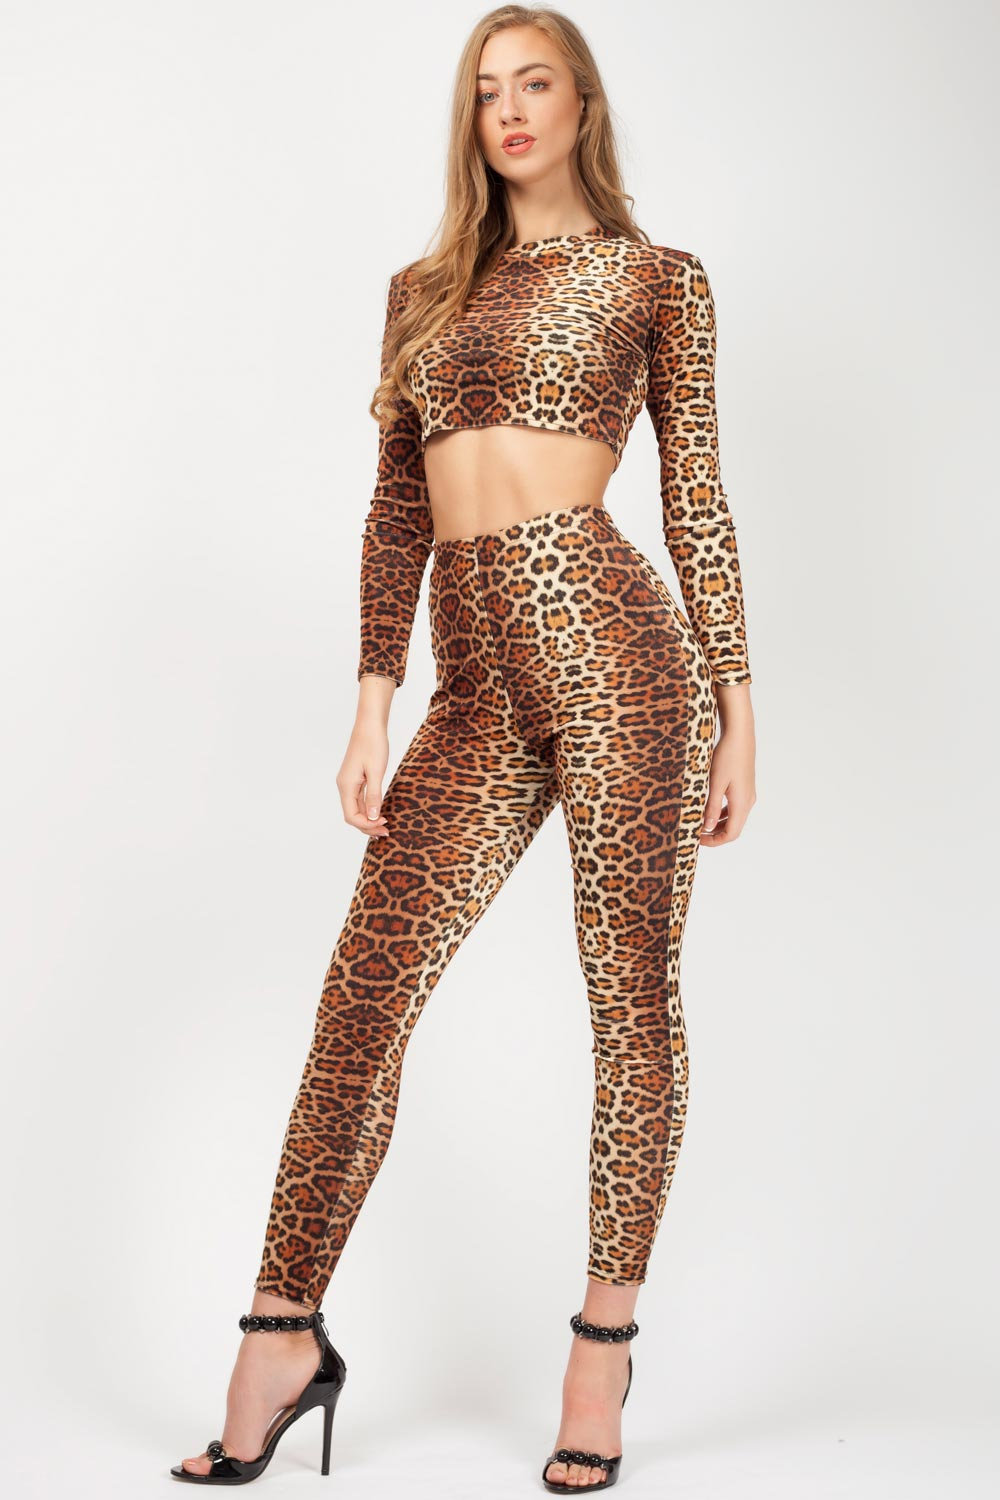 575218701 velour high waist trousers leopard print. velour leggings high waist